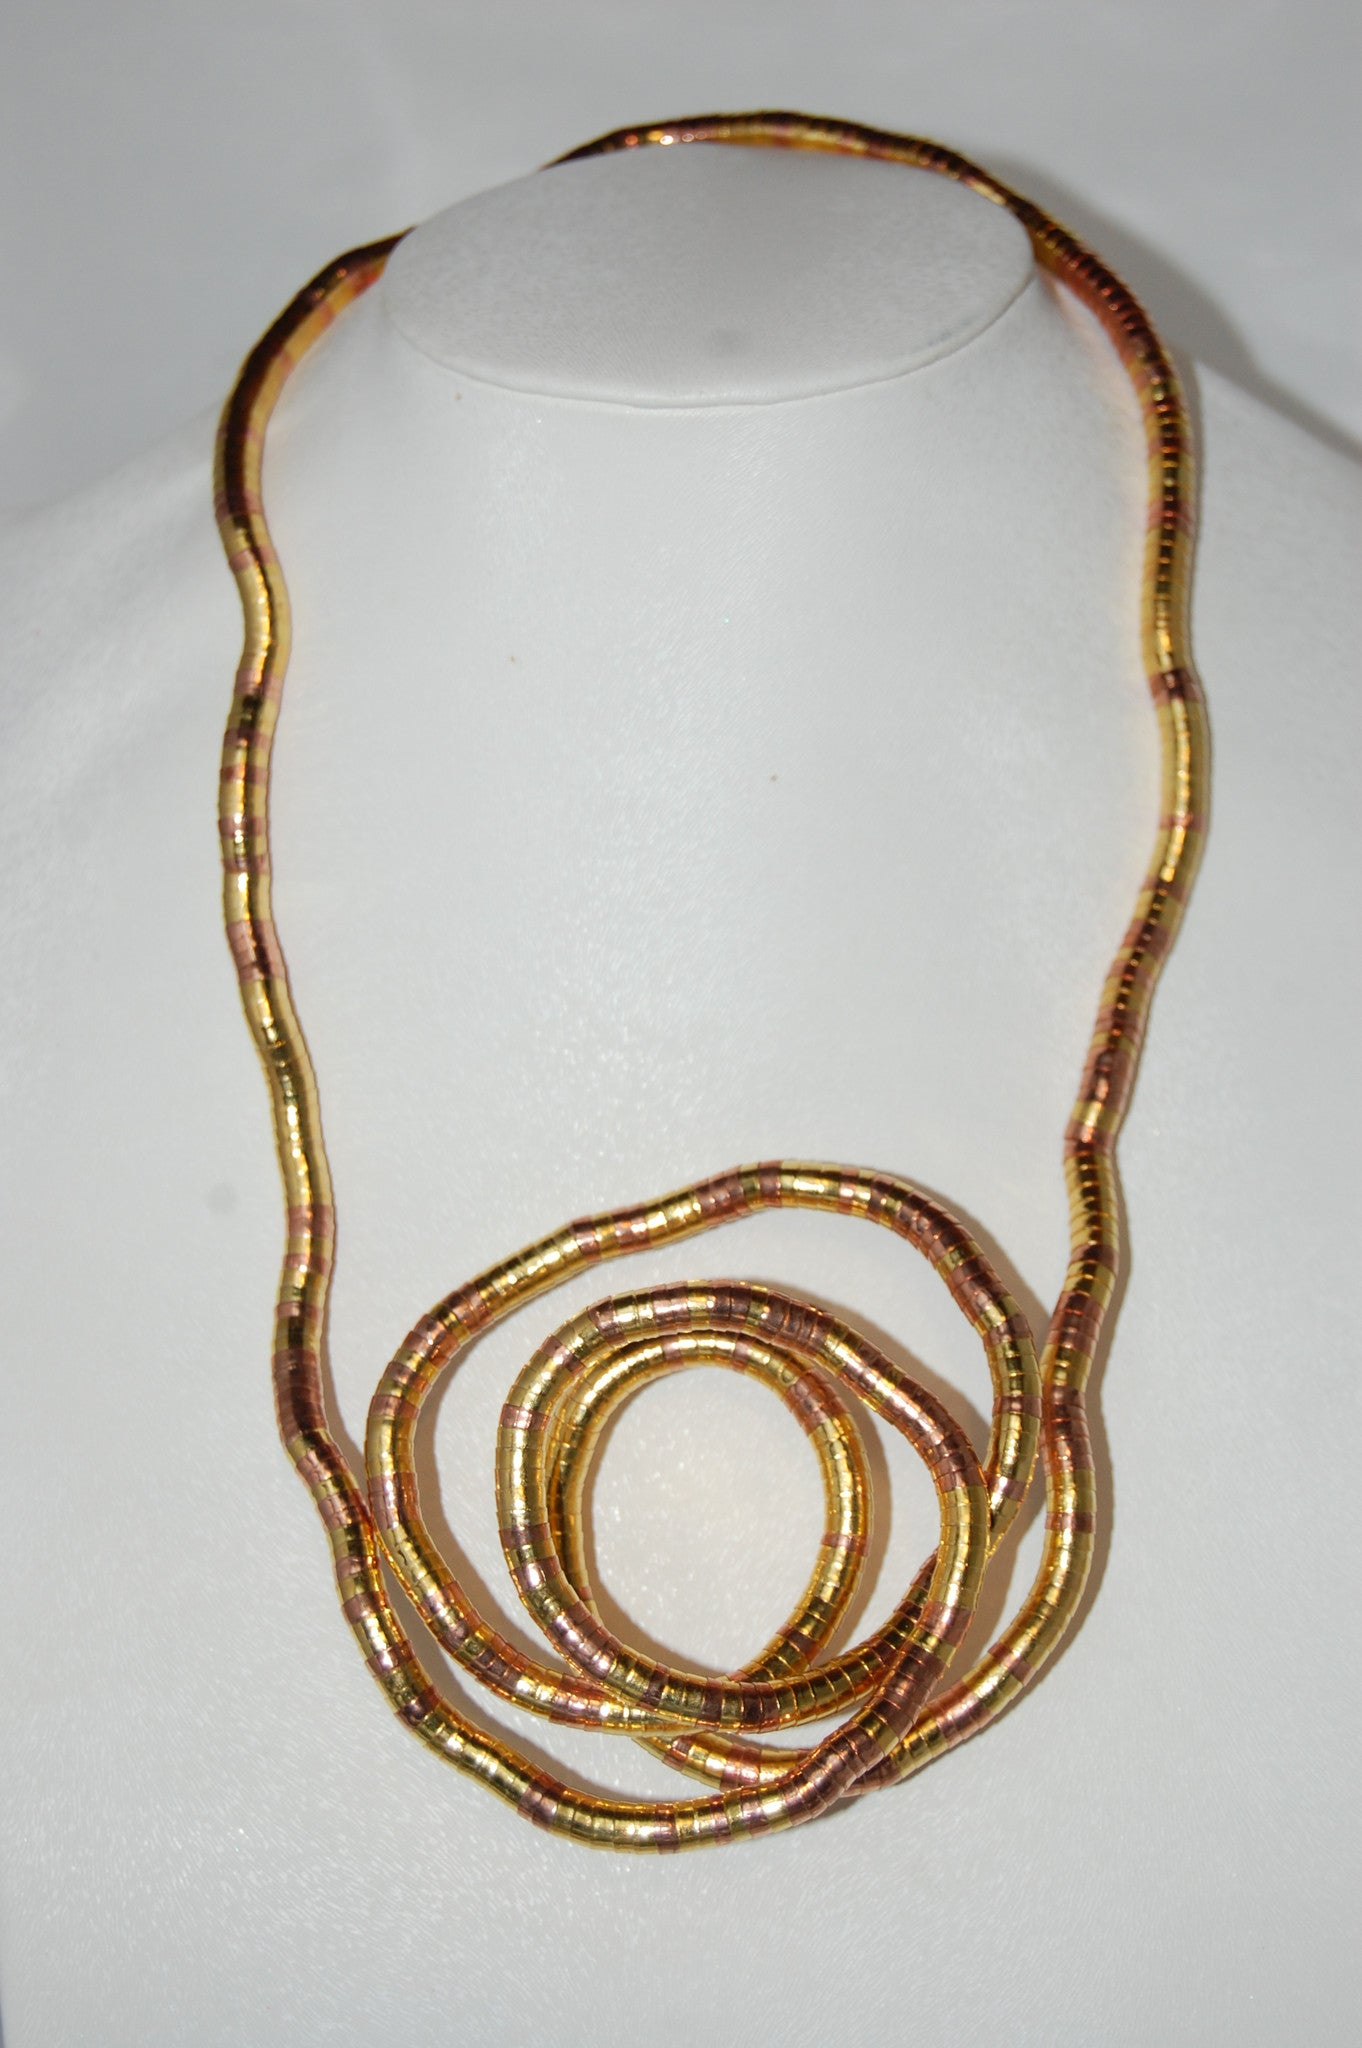 Gold and Rose Gold Bendable Necklace By Snake Twist